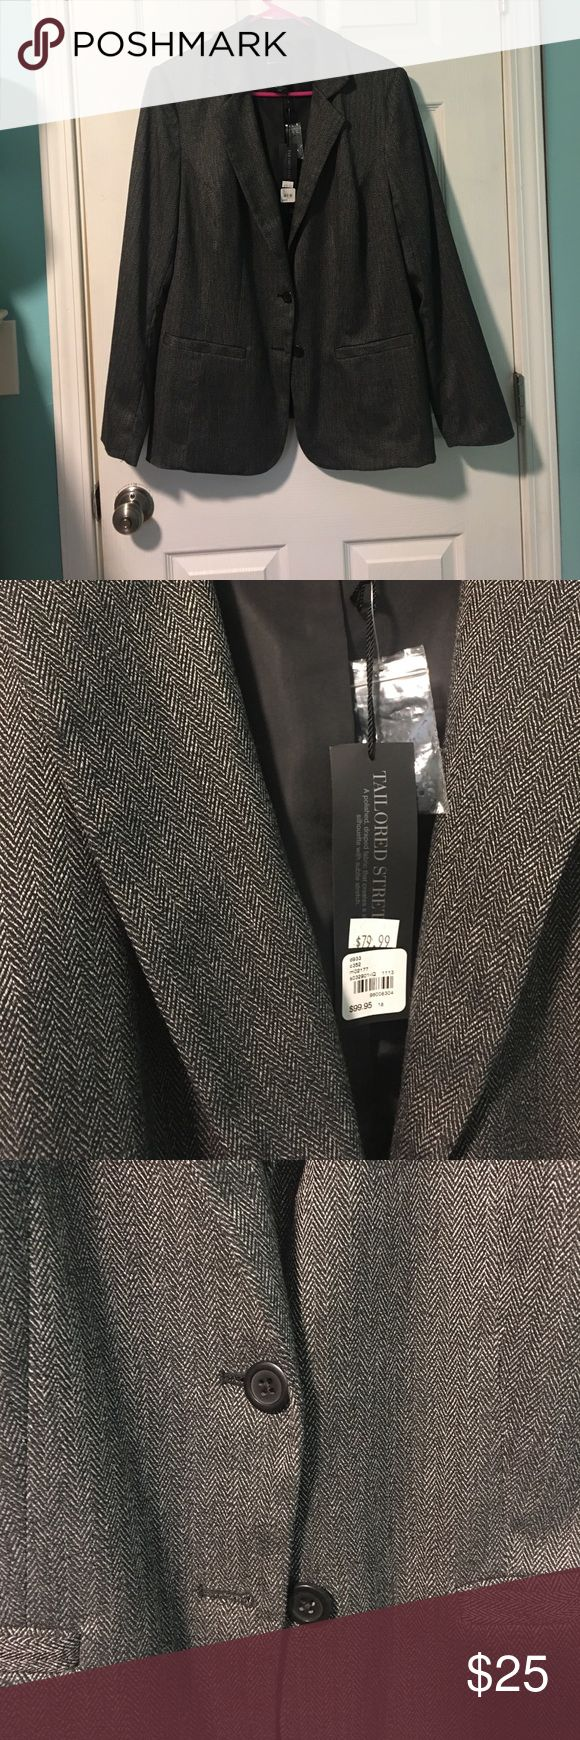 Grey tailored cut herringbone suit jacket Grey tailored cut herringbone suit jacket. Never been worn. Spare buttons included. See other post for matching ankle style suit pants - 10% off on bundles Lane Bryant Jackets & Coats Blazers